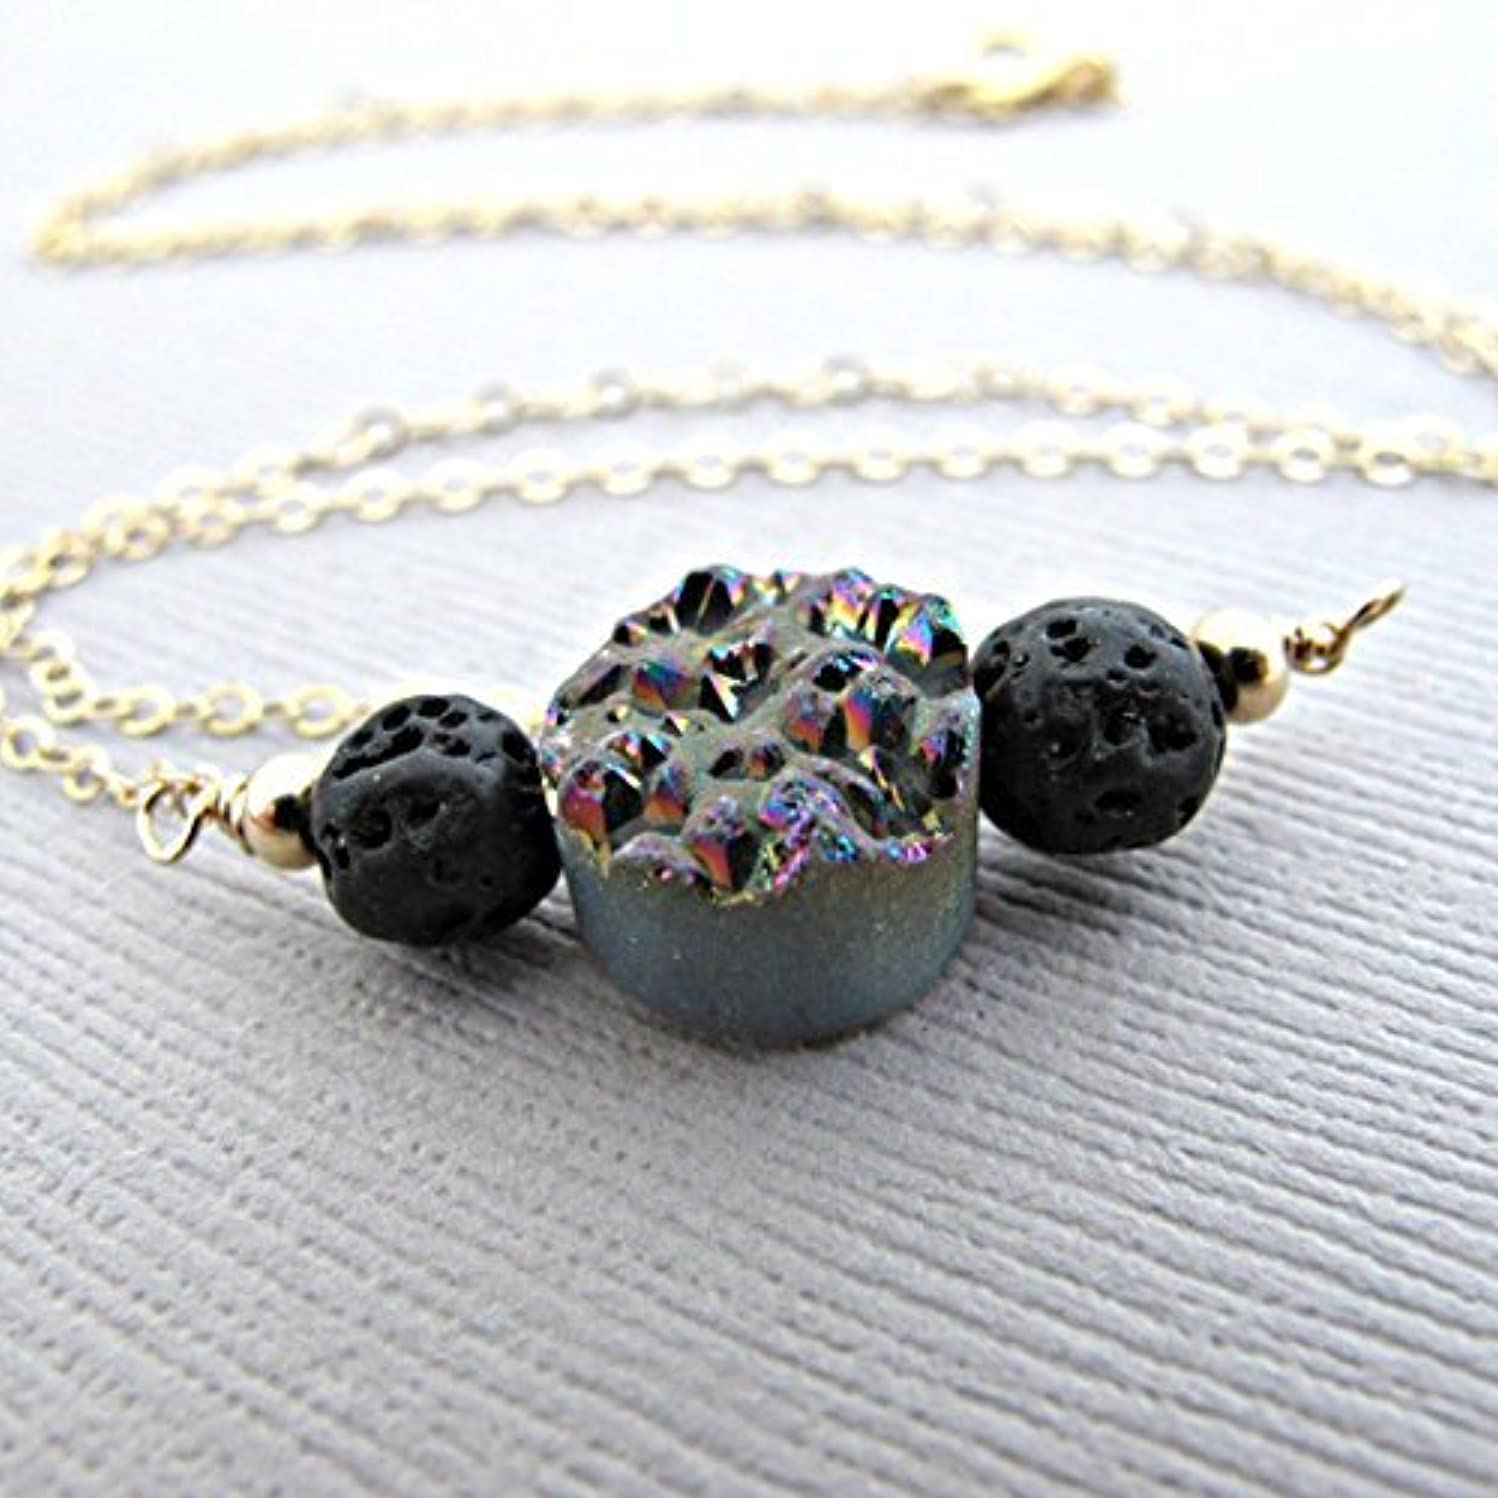 眠いですスリーブ尽きるRainbow Druzy Lava Pendant Essential Oil Necklace Diffuser Aromatherapy - Simple Minimalist Lava Bead Diffuser...